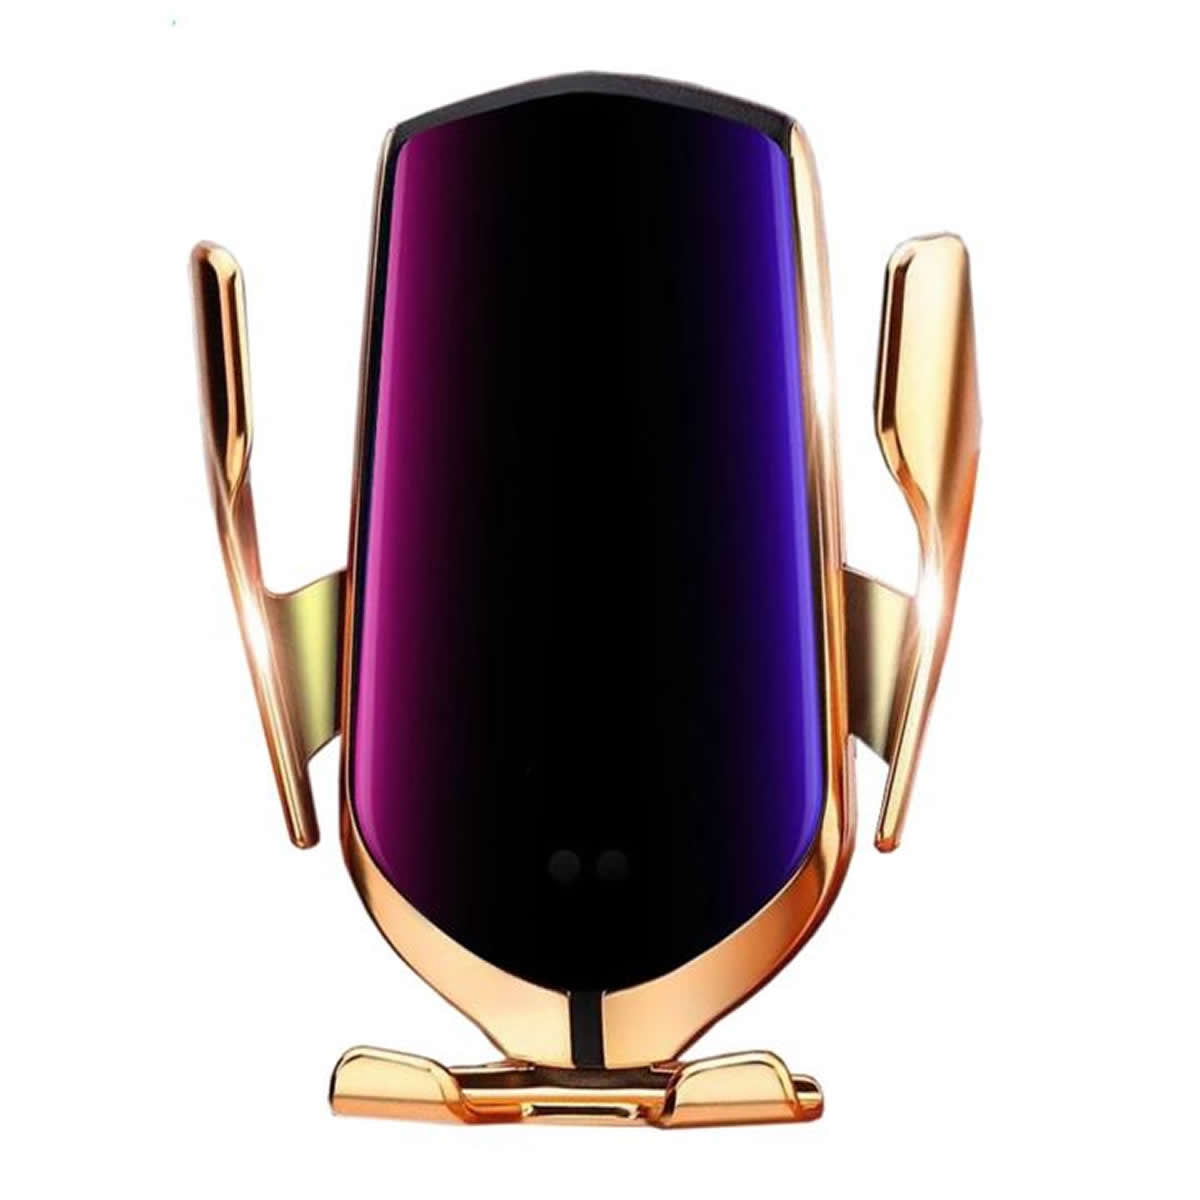 Penguin Wireless Car Charger and Dock For Smart Phones - Gold